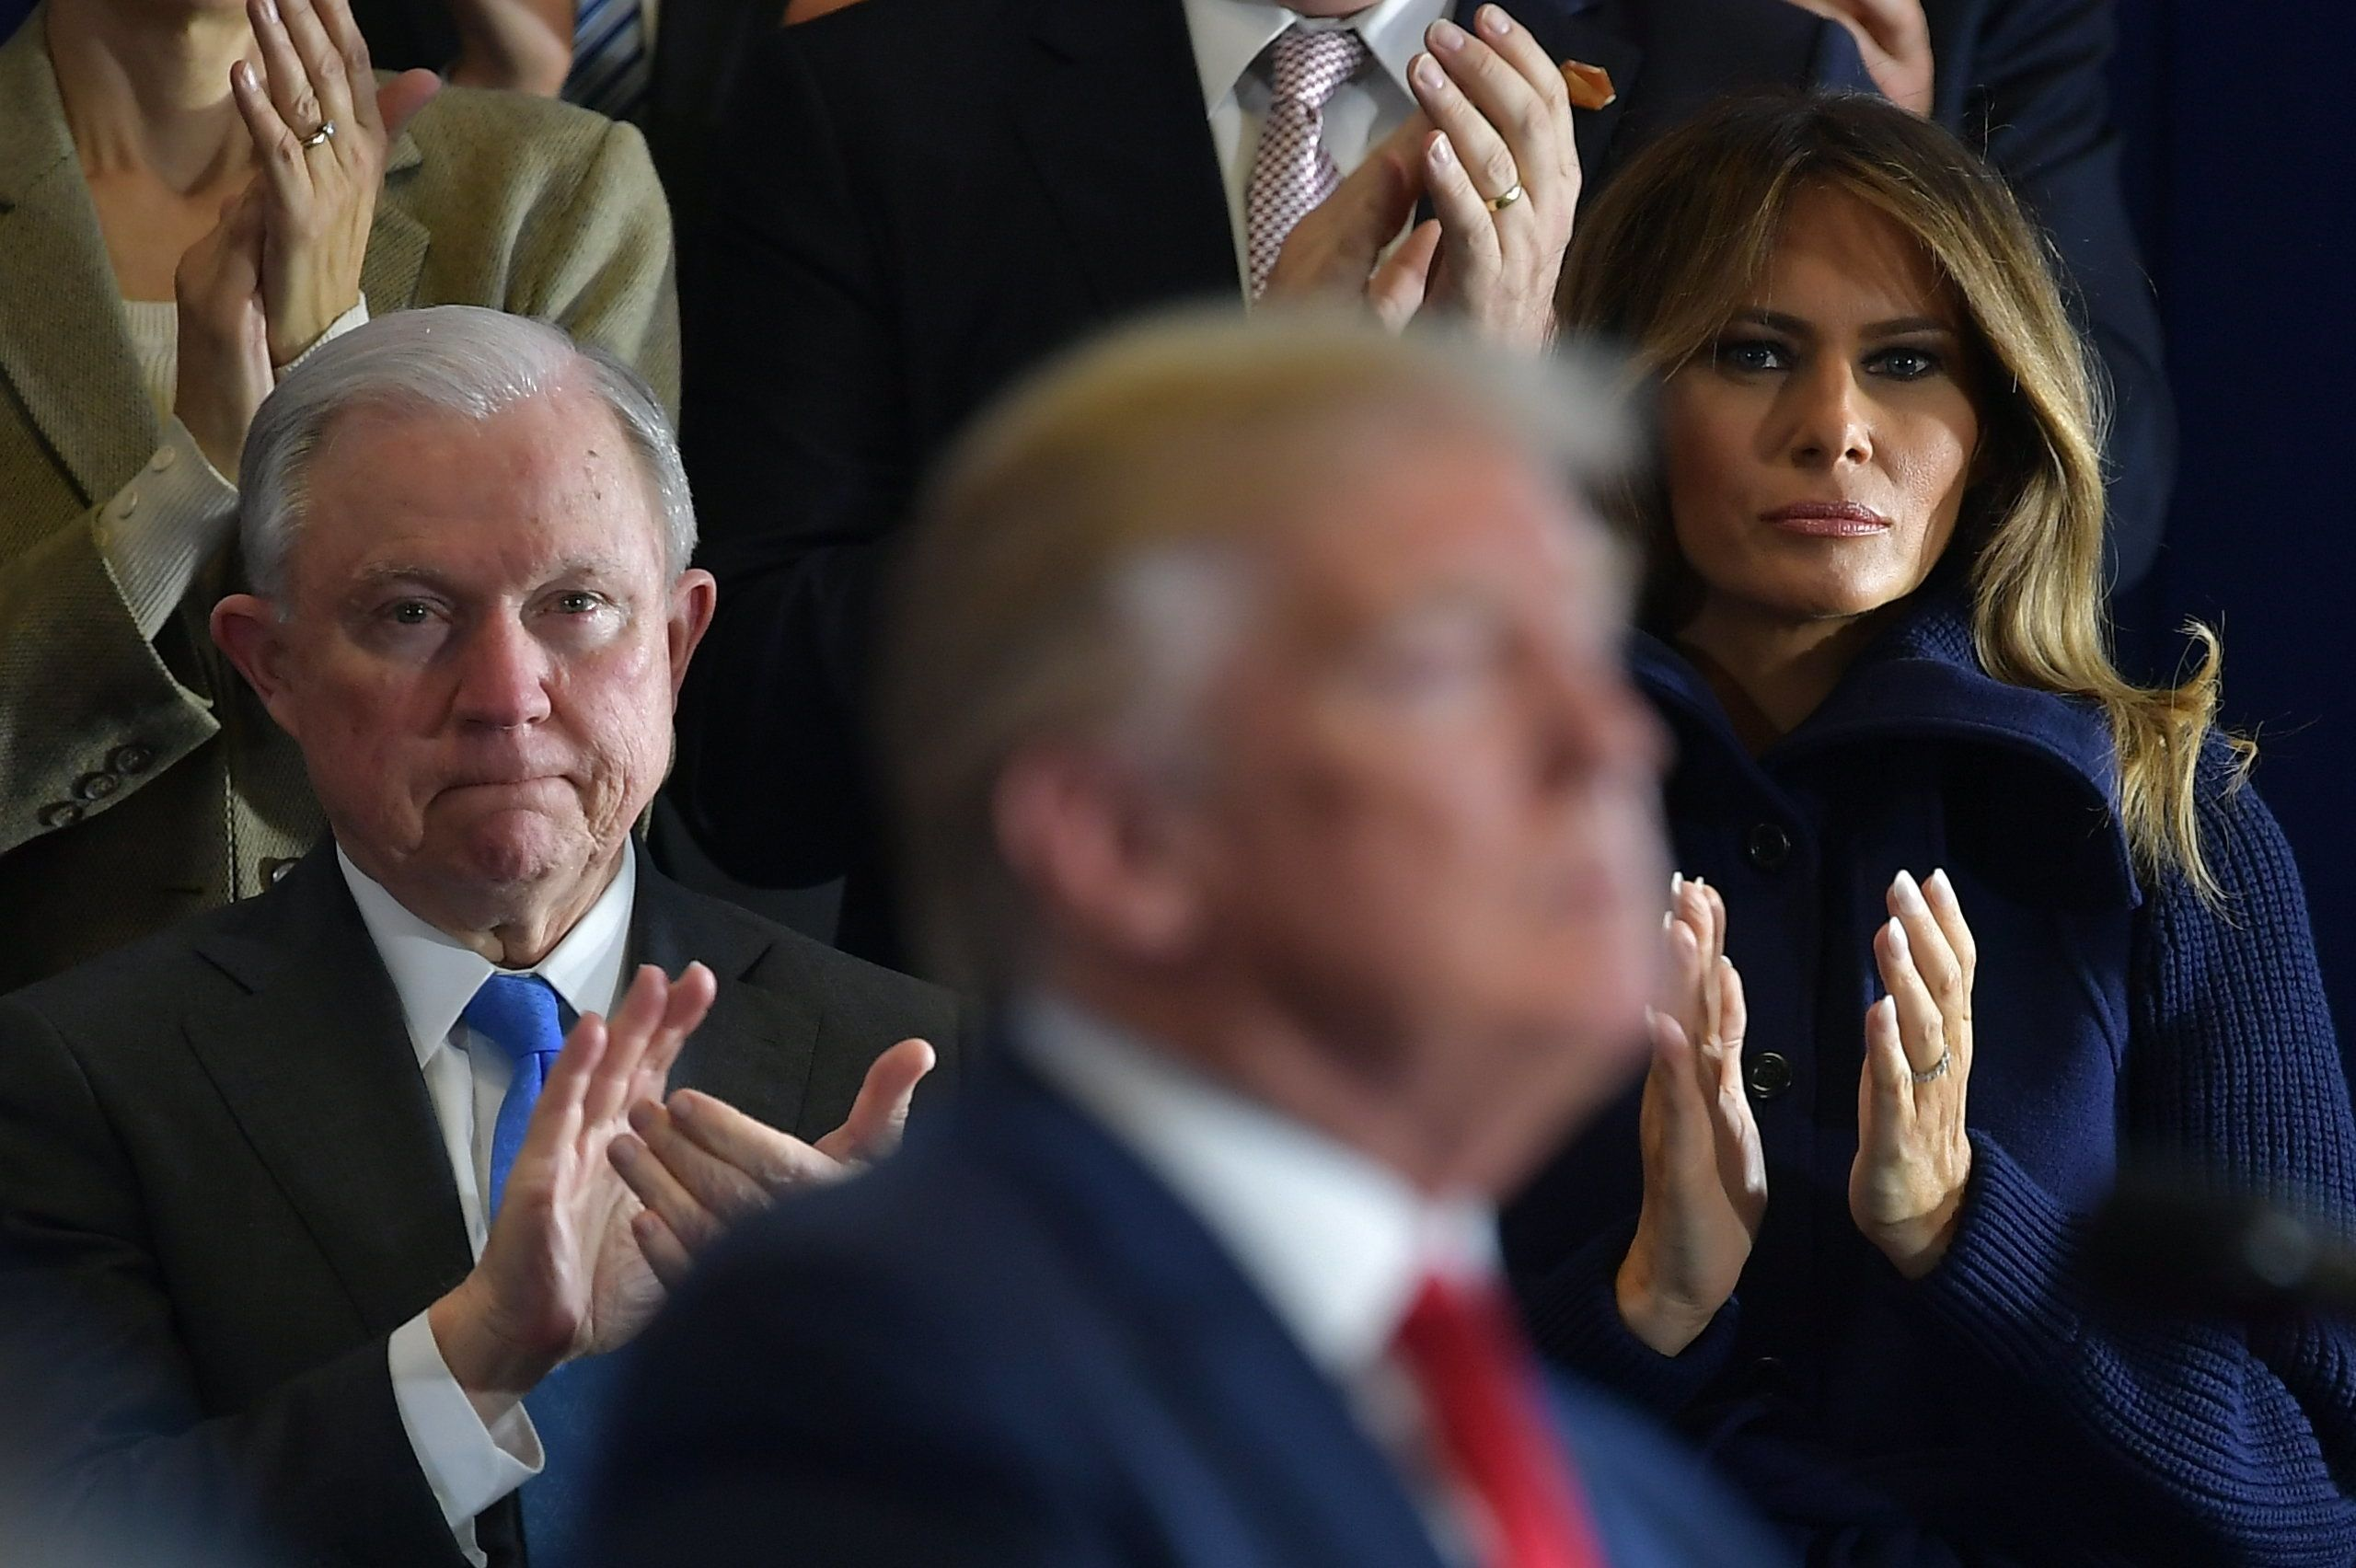 Attorney General Jeff Sessions(L) and First Lady Melania Trump applaud as US President Donald Trump speaks about combating the opioid crisis at Manchester Community College in Manchester, New Hampshire on March 19, 2018. / AFP PHOTO / MANDEL NGAN        (Photo credit should read MANDEL NGAN/AFP/Getty Images)